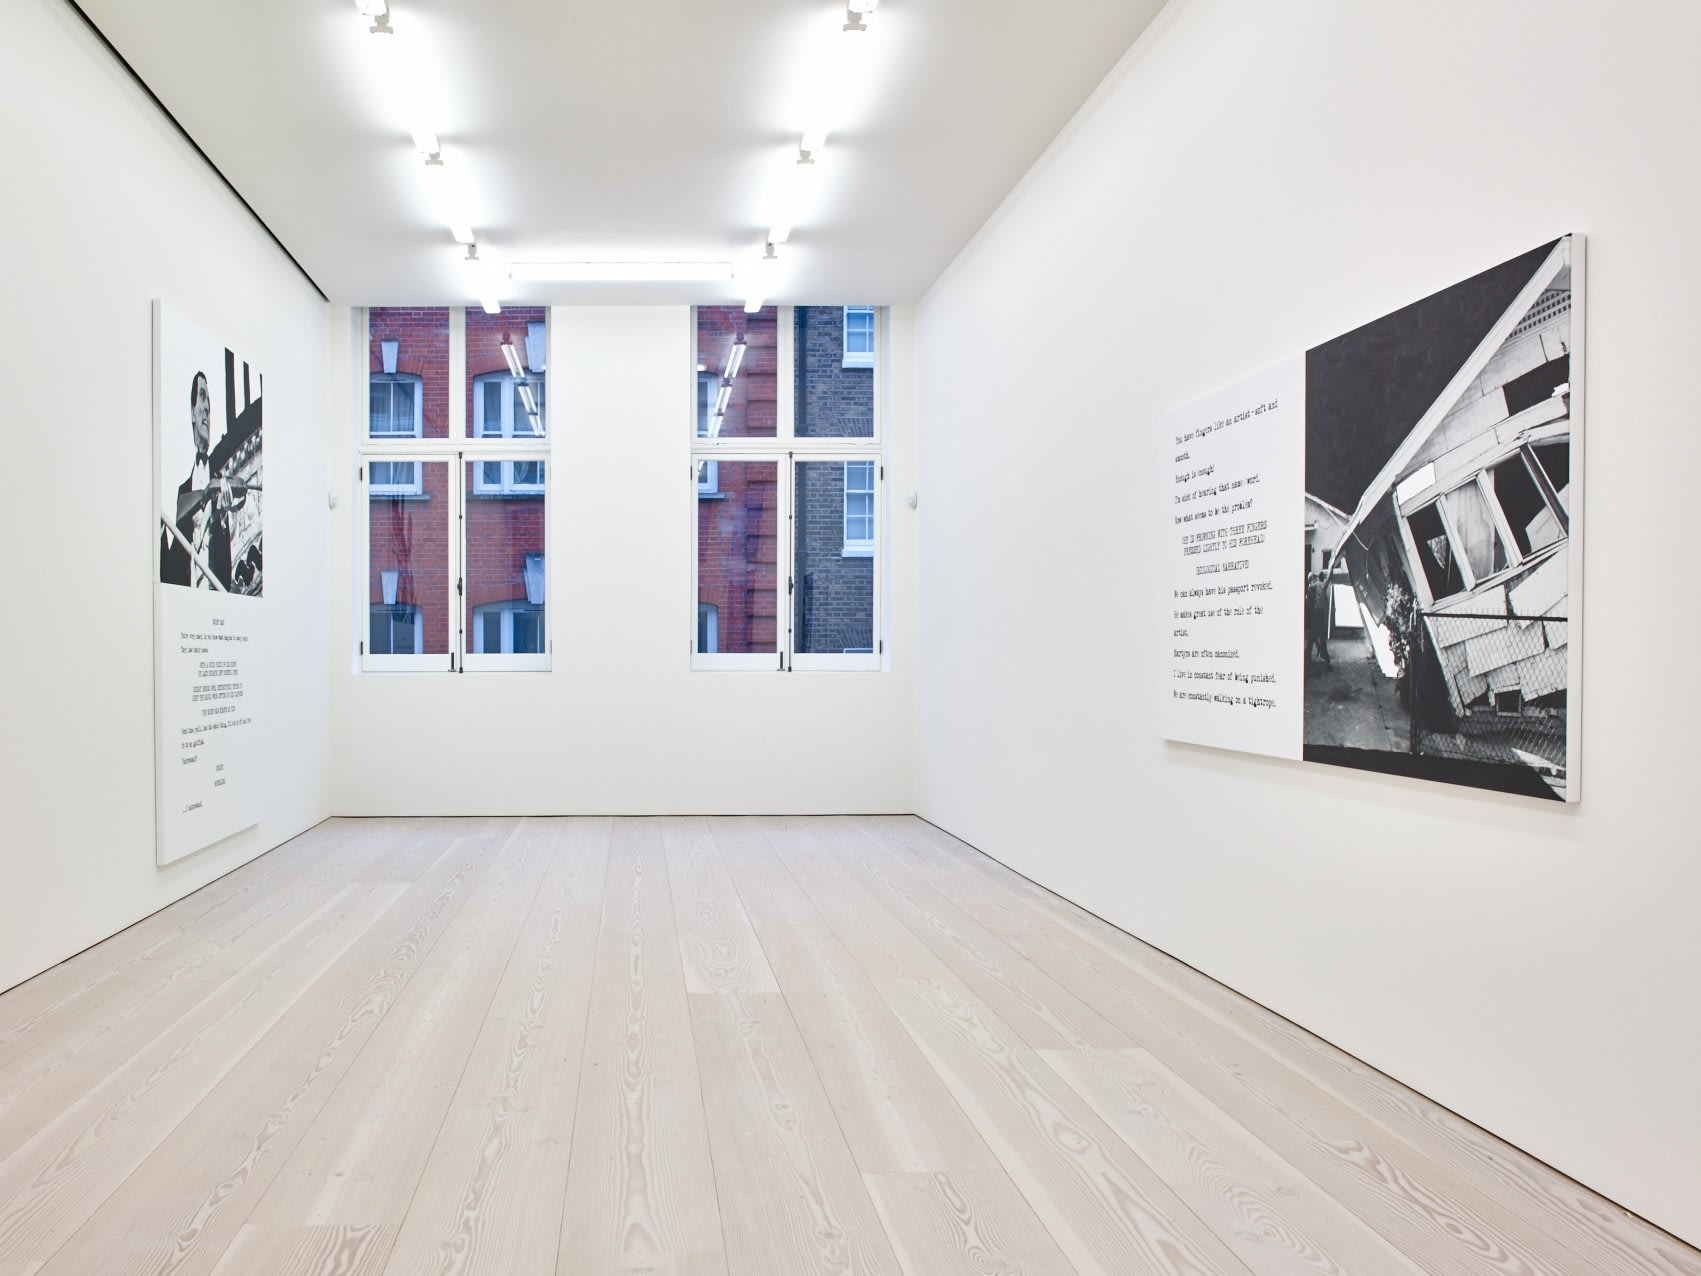 In a large white space with two large windows in the middle, 2 large paintings hang on opposite walls. Each are roughly half image and half text, which is in the format of a film script.